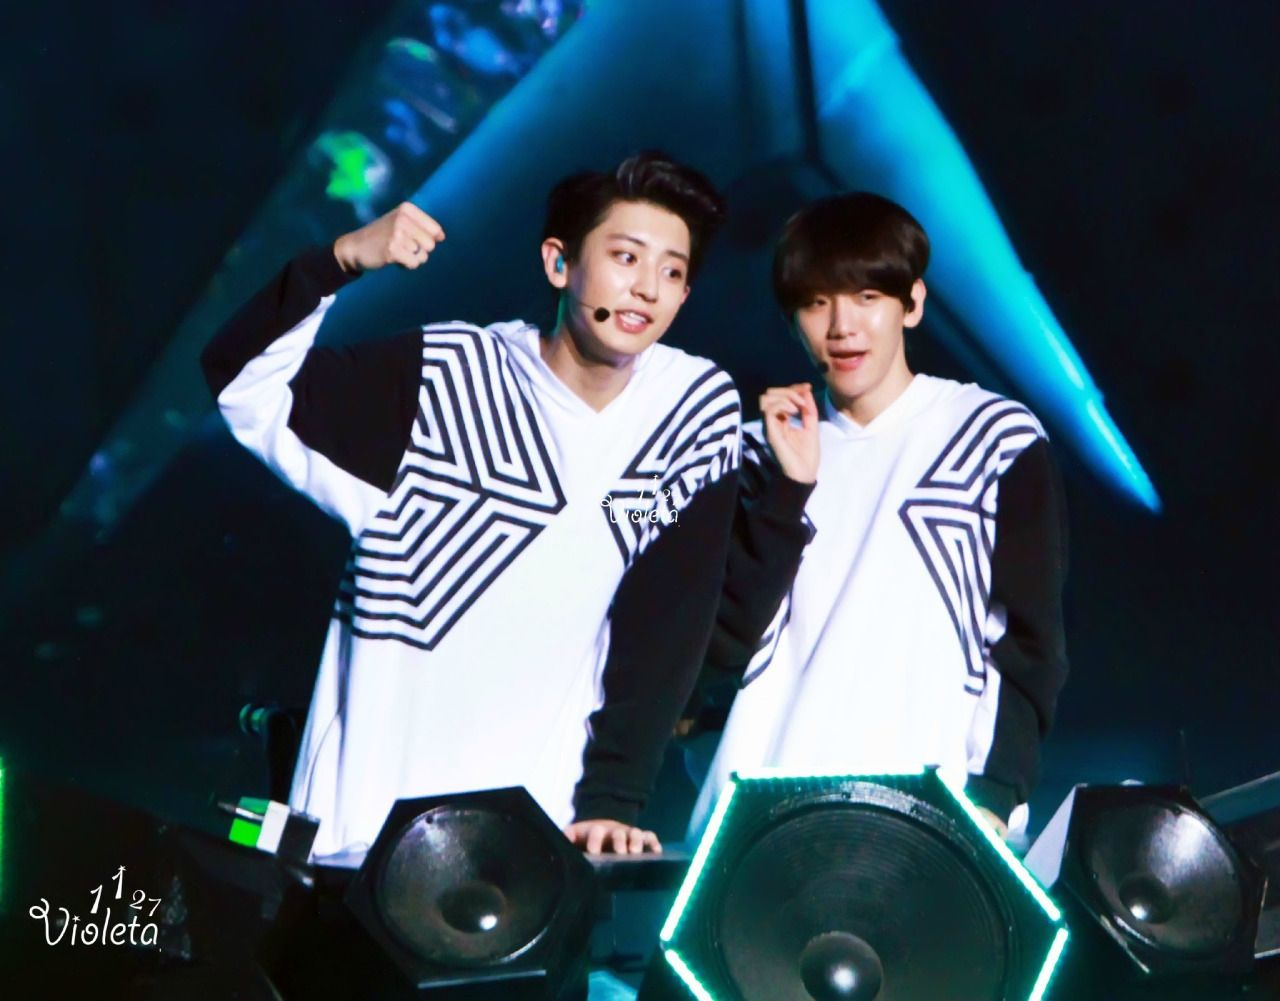 Chanyeol, Baekhyun - 140921 EXO from Exoplanet #1 - The Lost Planet in Beijing Credit: Violeta_1127.